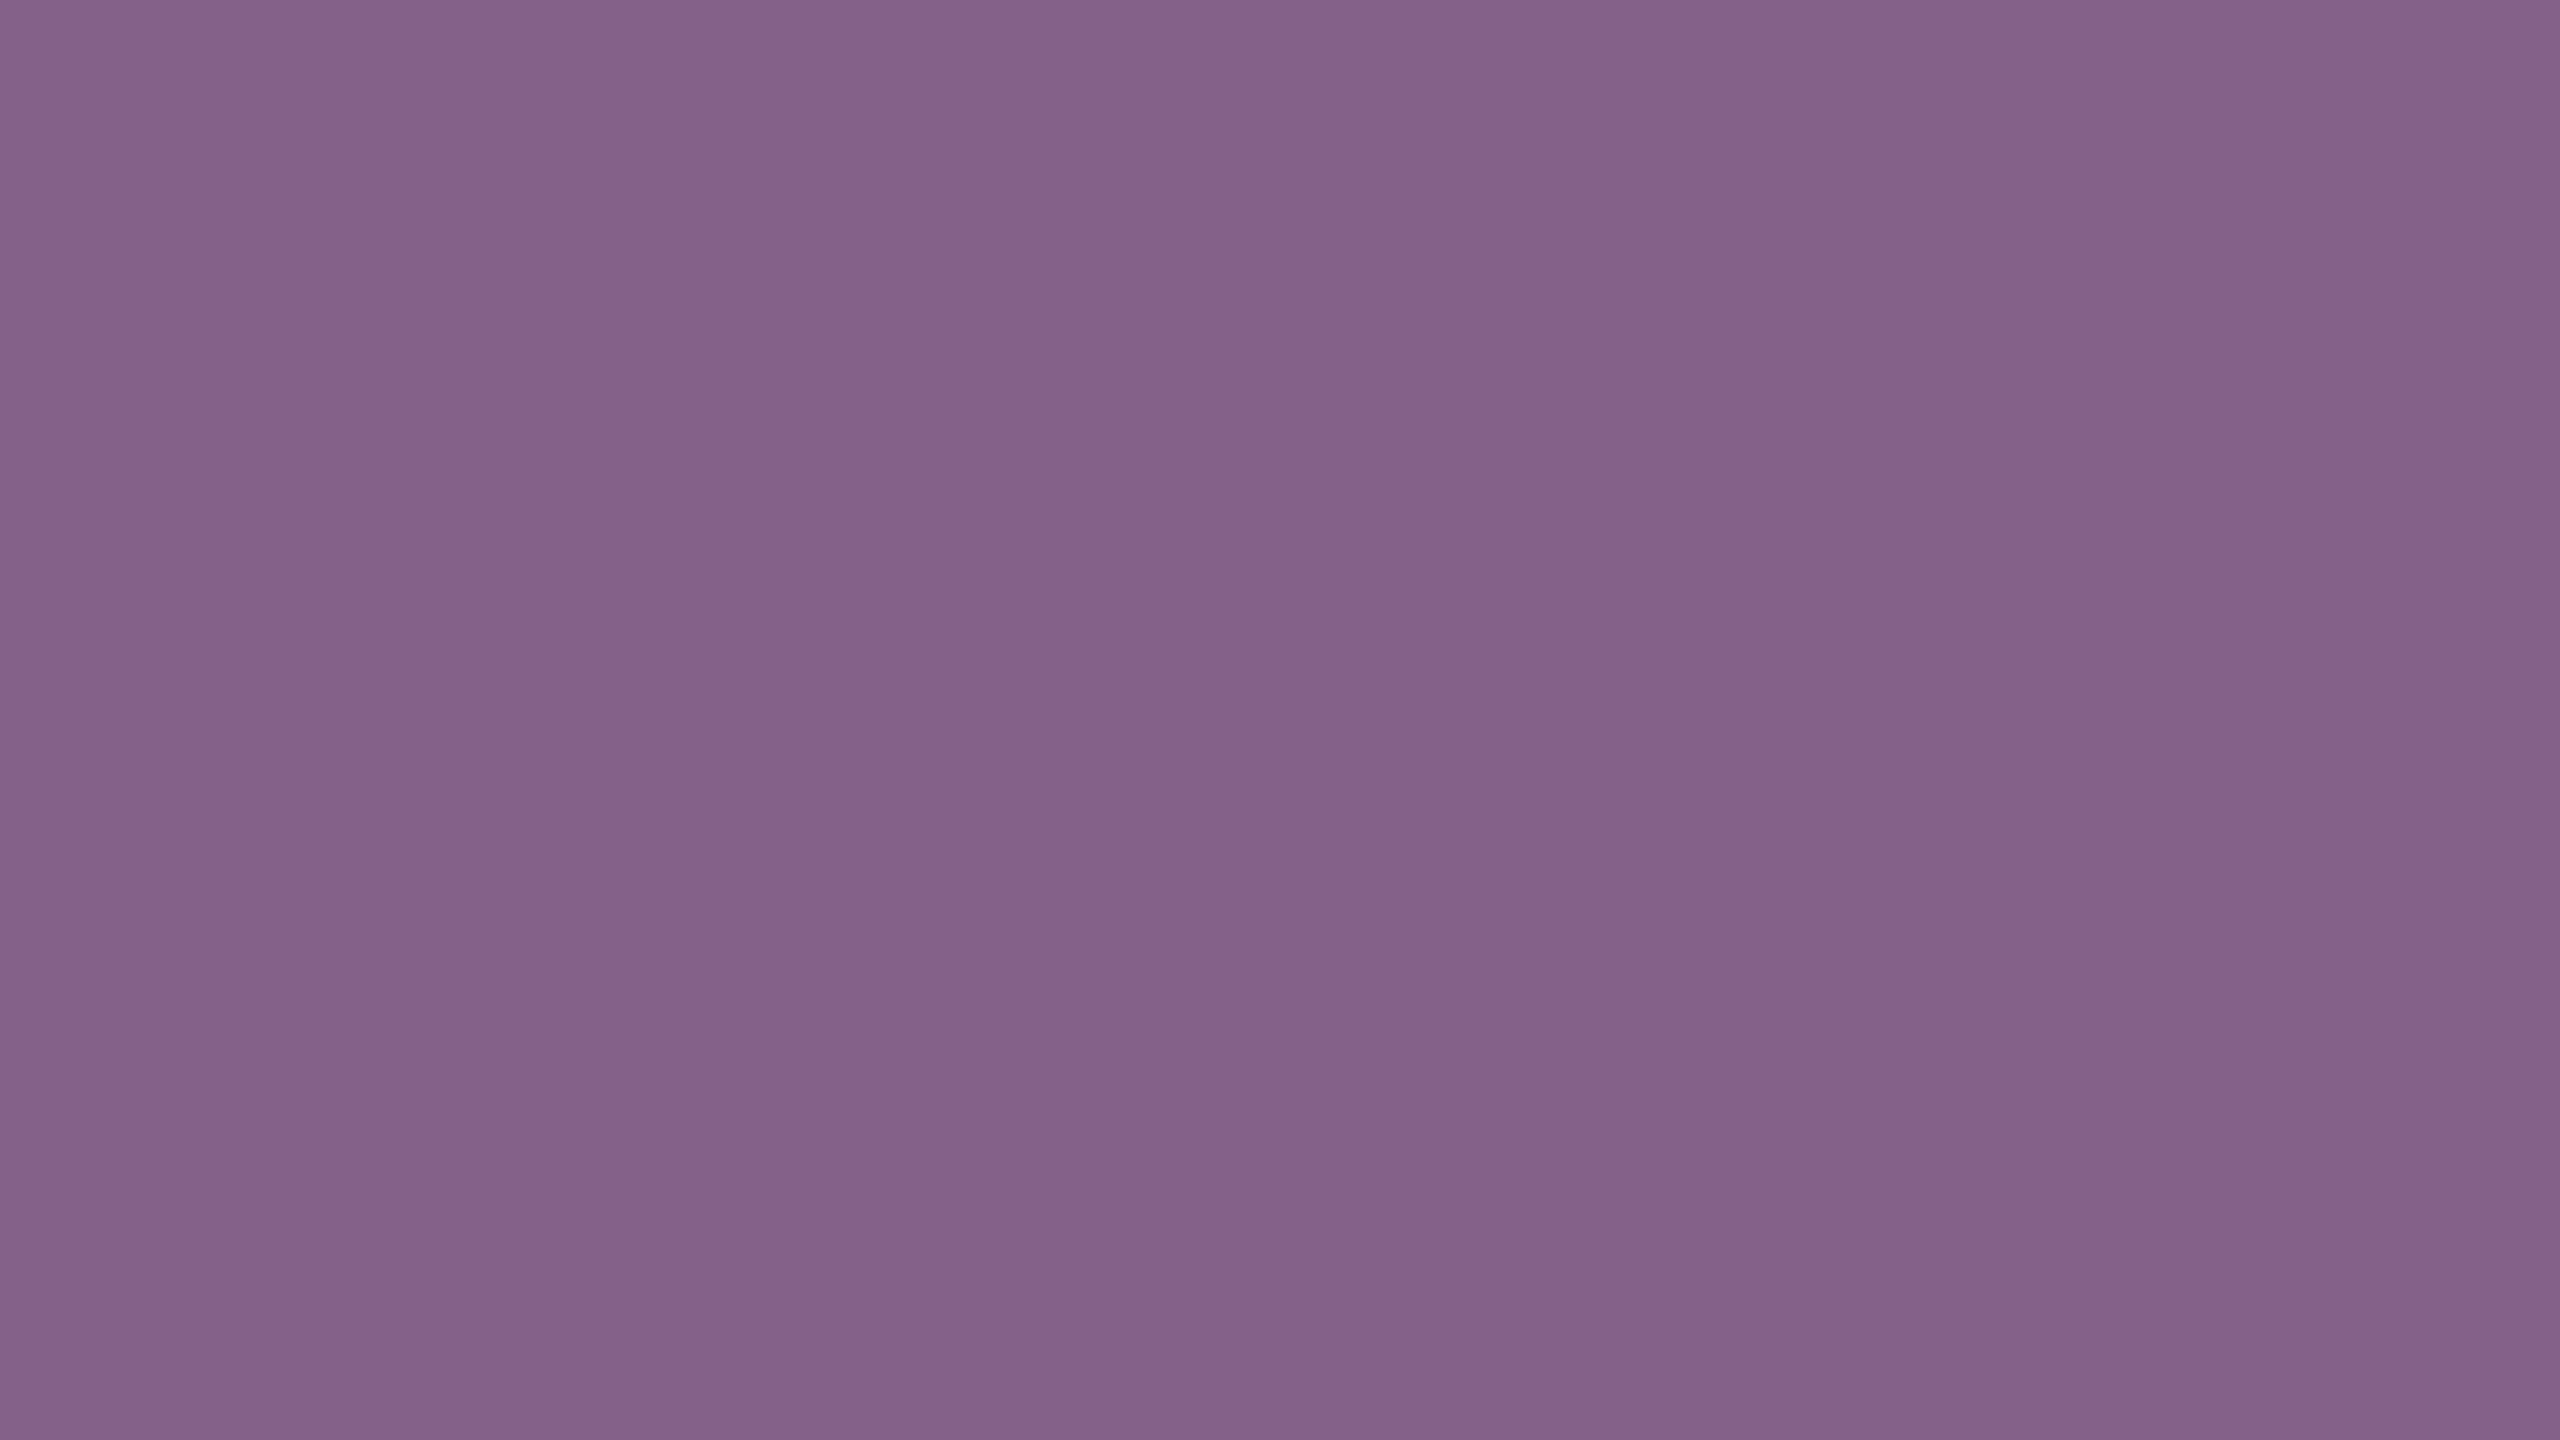 2560x1440 Chinese Violet Solid Color Background